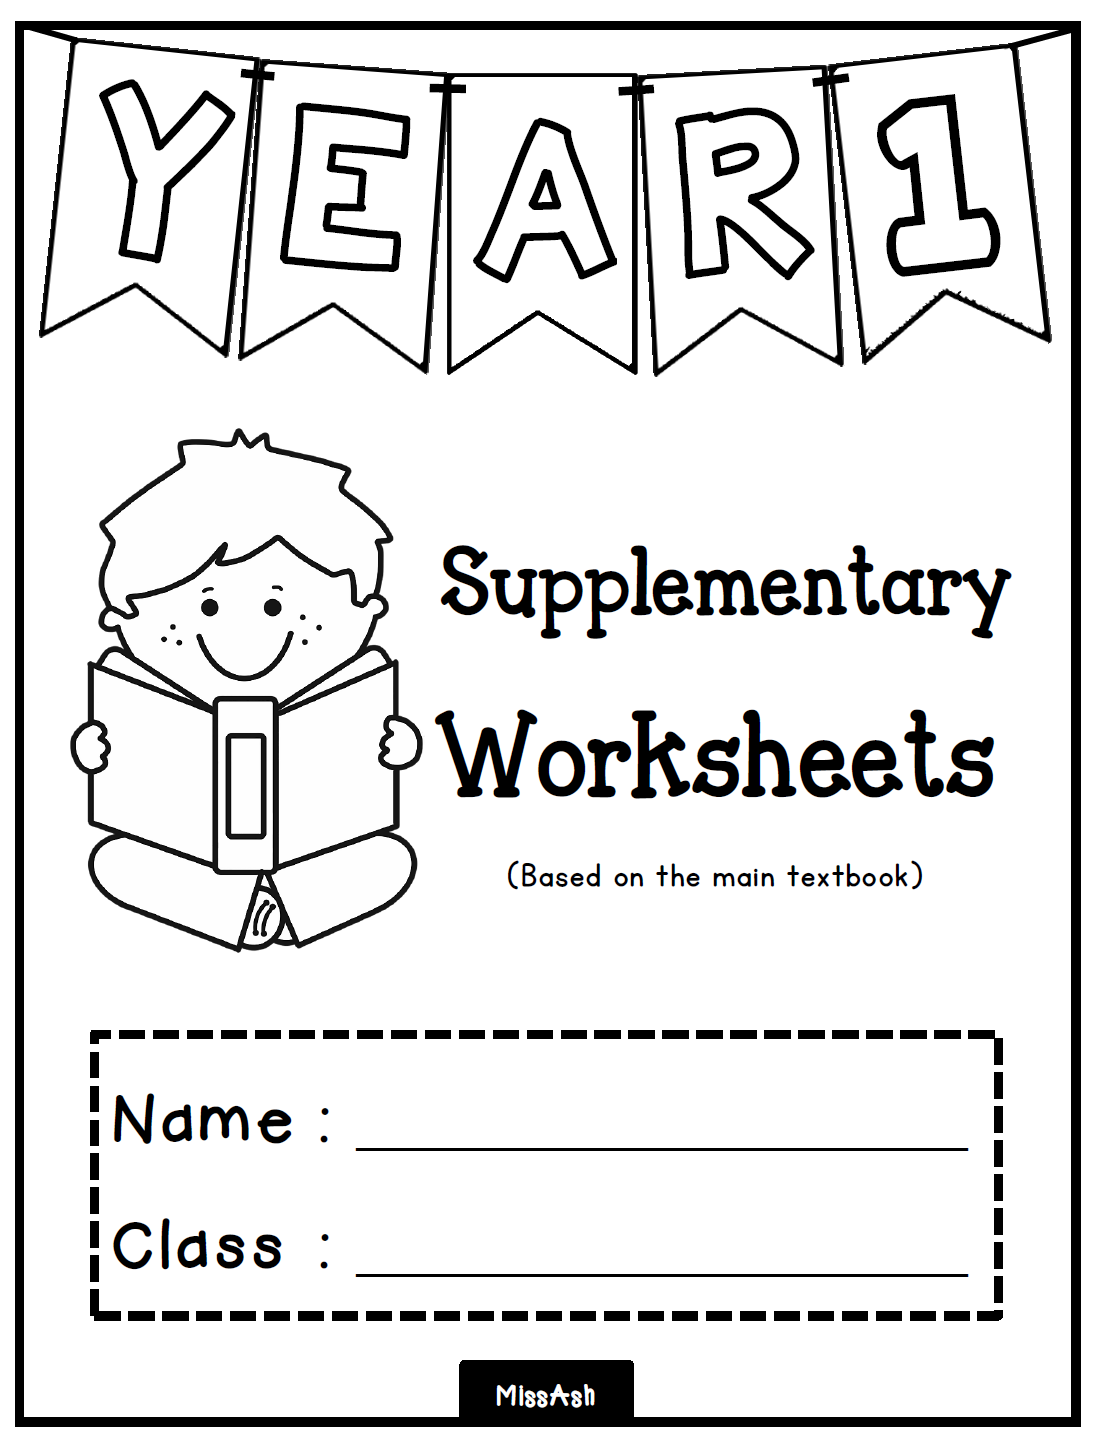 ASH THE TEACHER: YEAR 1 SUPPLEMENTARY WORKSHEETS (Unit 0 - 4)